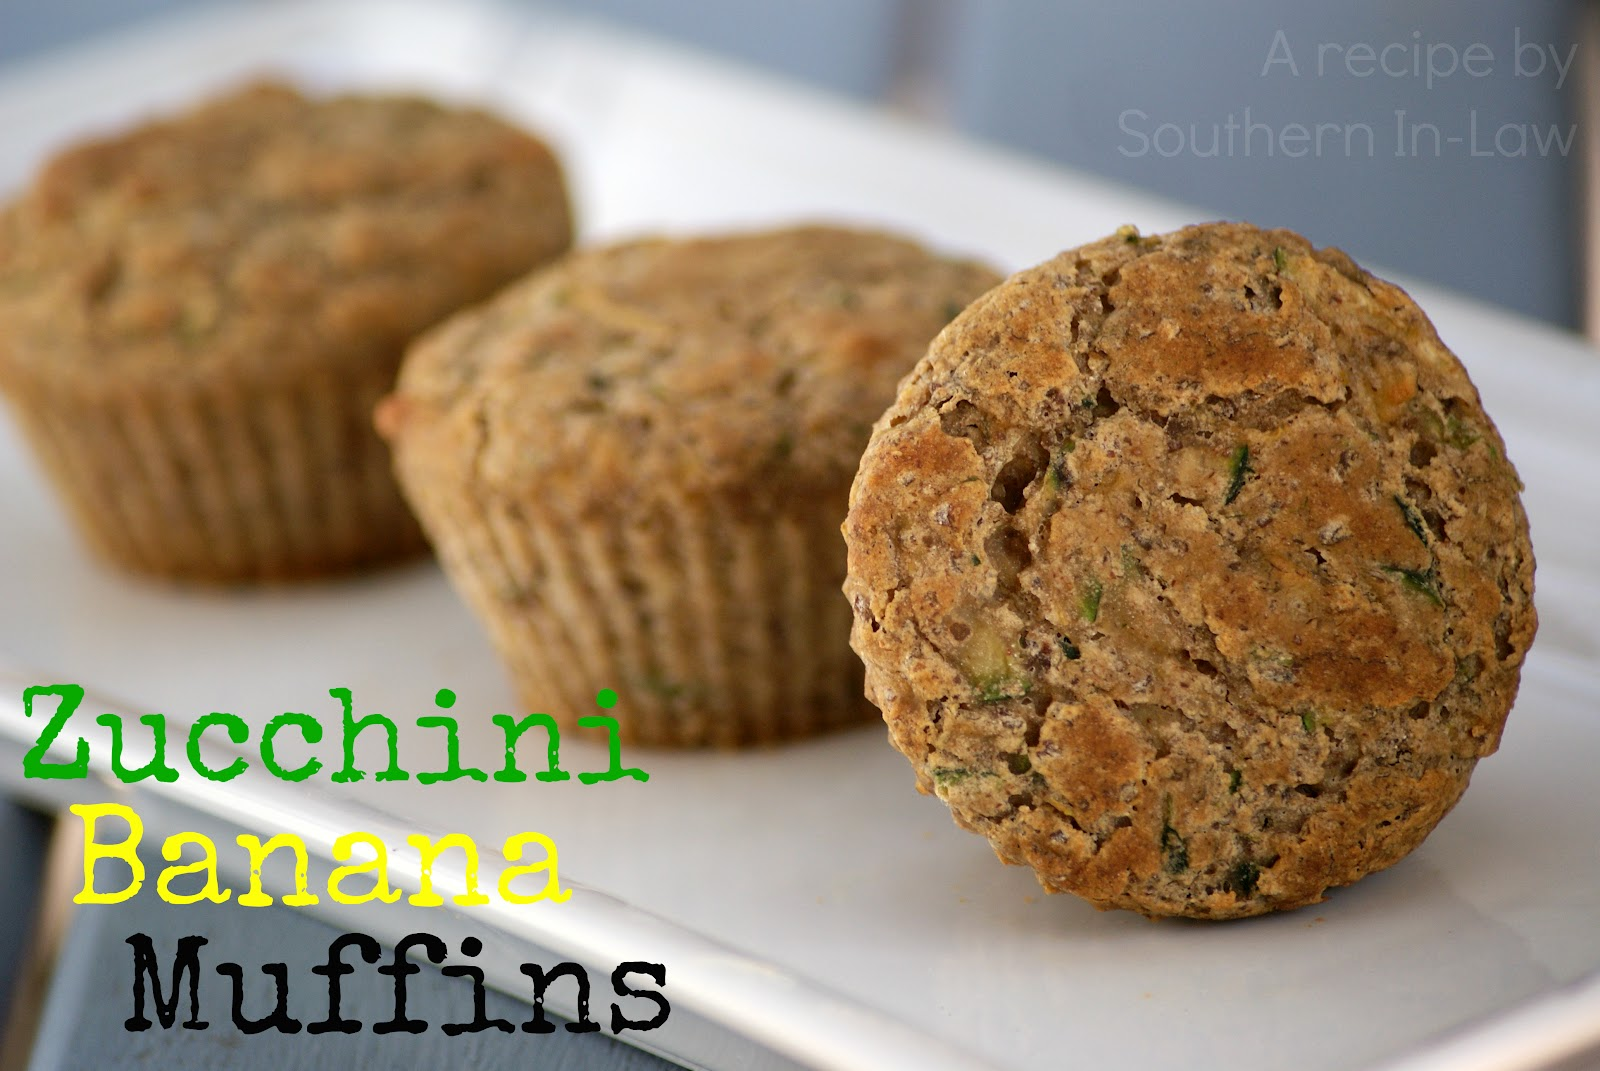 Southern In Law: Recipe: Zucchini Banana Muffins